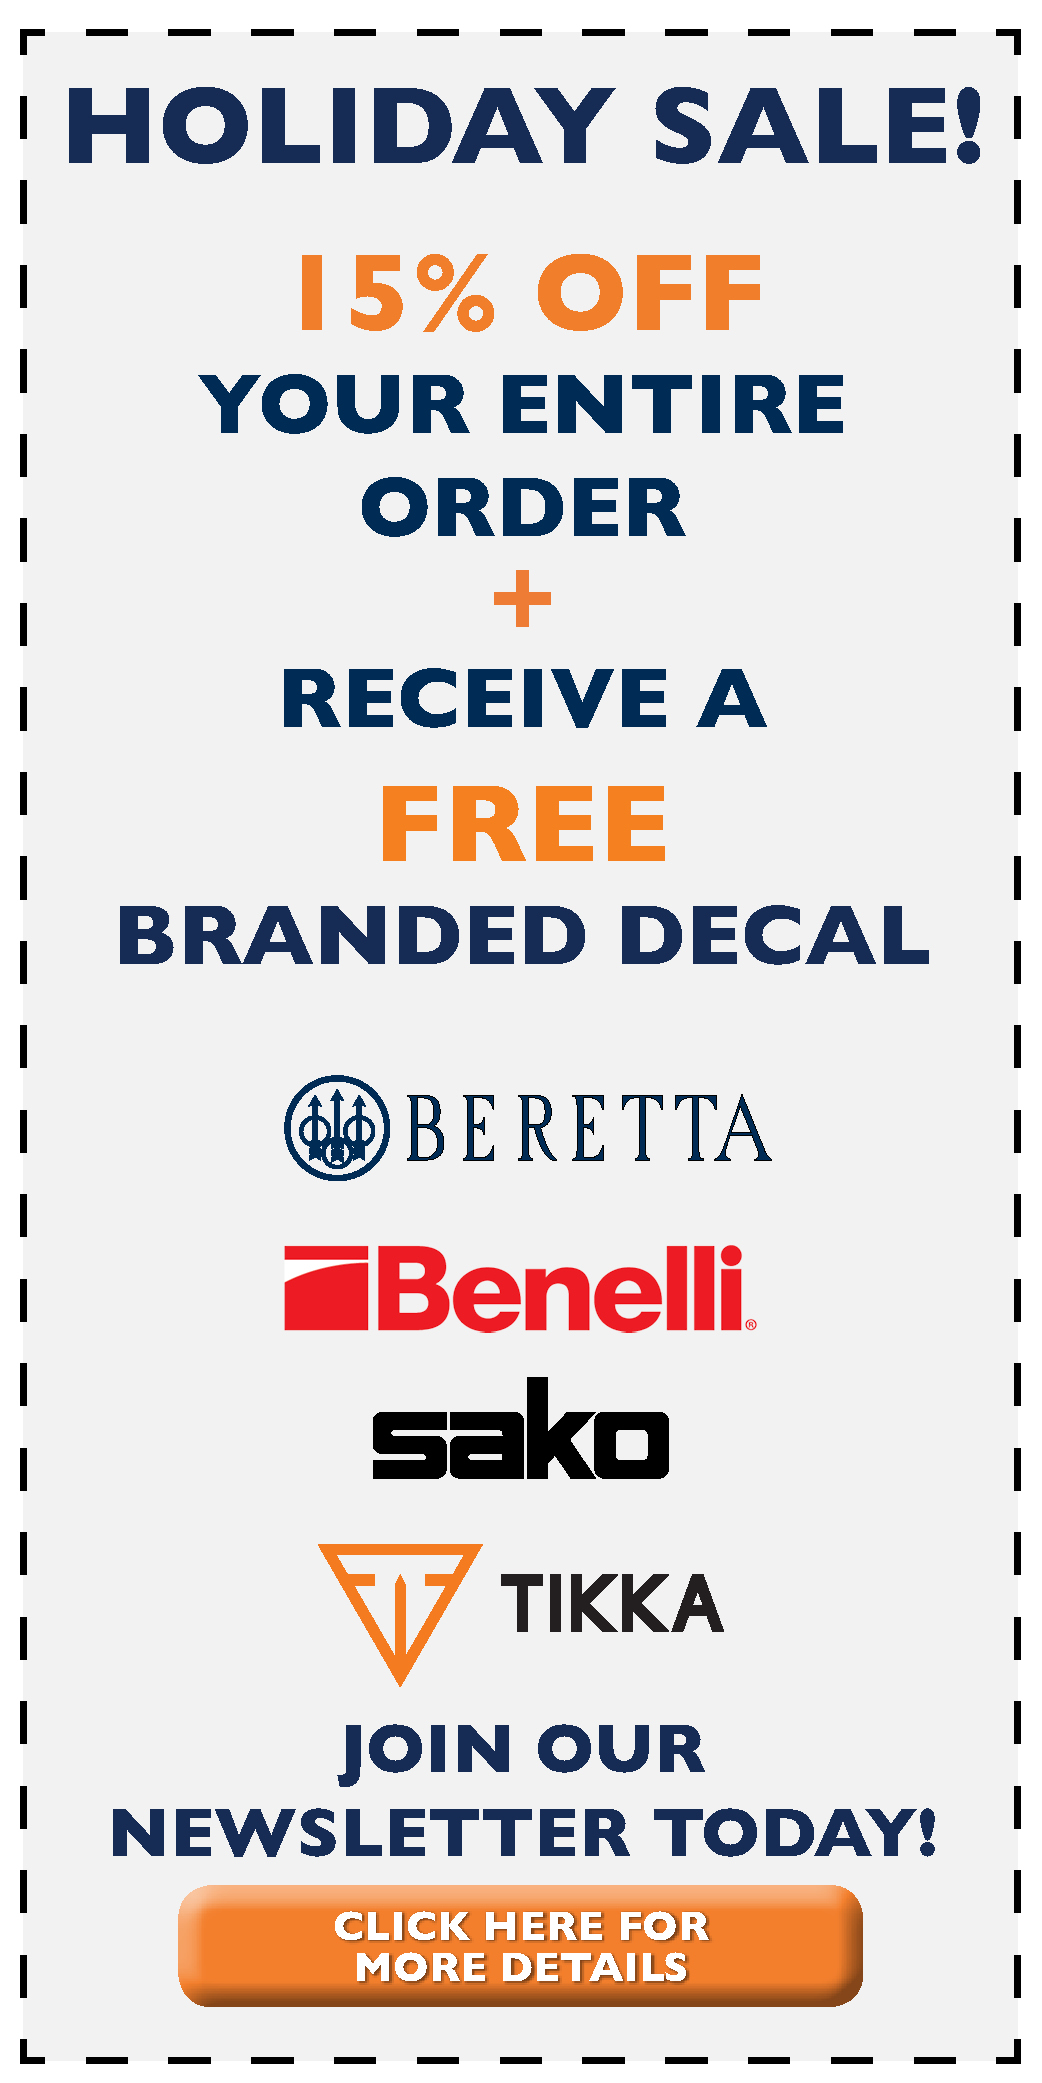 Beretta Holiday 2018 Promotion